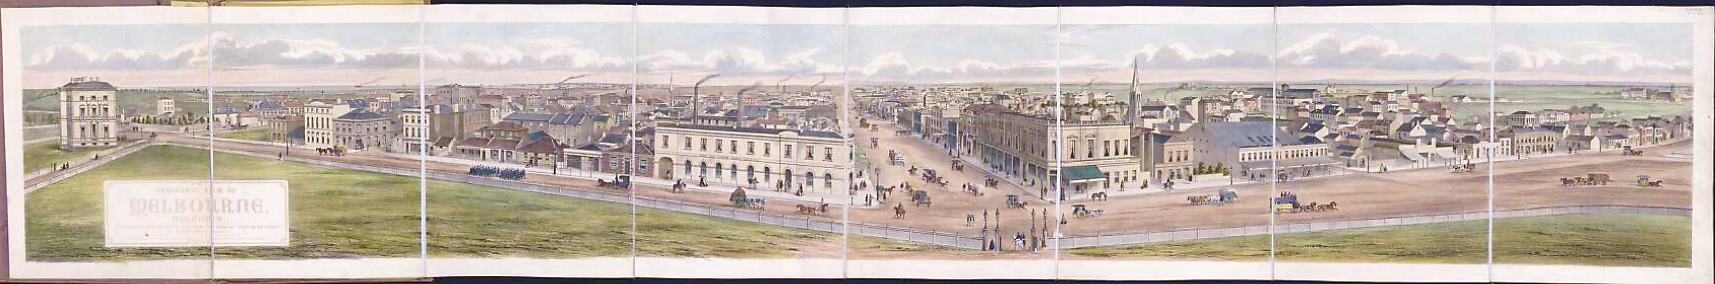 Panoramic view of Melbourne, Victoria. Lithographed by De Gruchy & Leigh from photographs taken on the summit of the Parliament Houses. 1863. National Library of Australia.